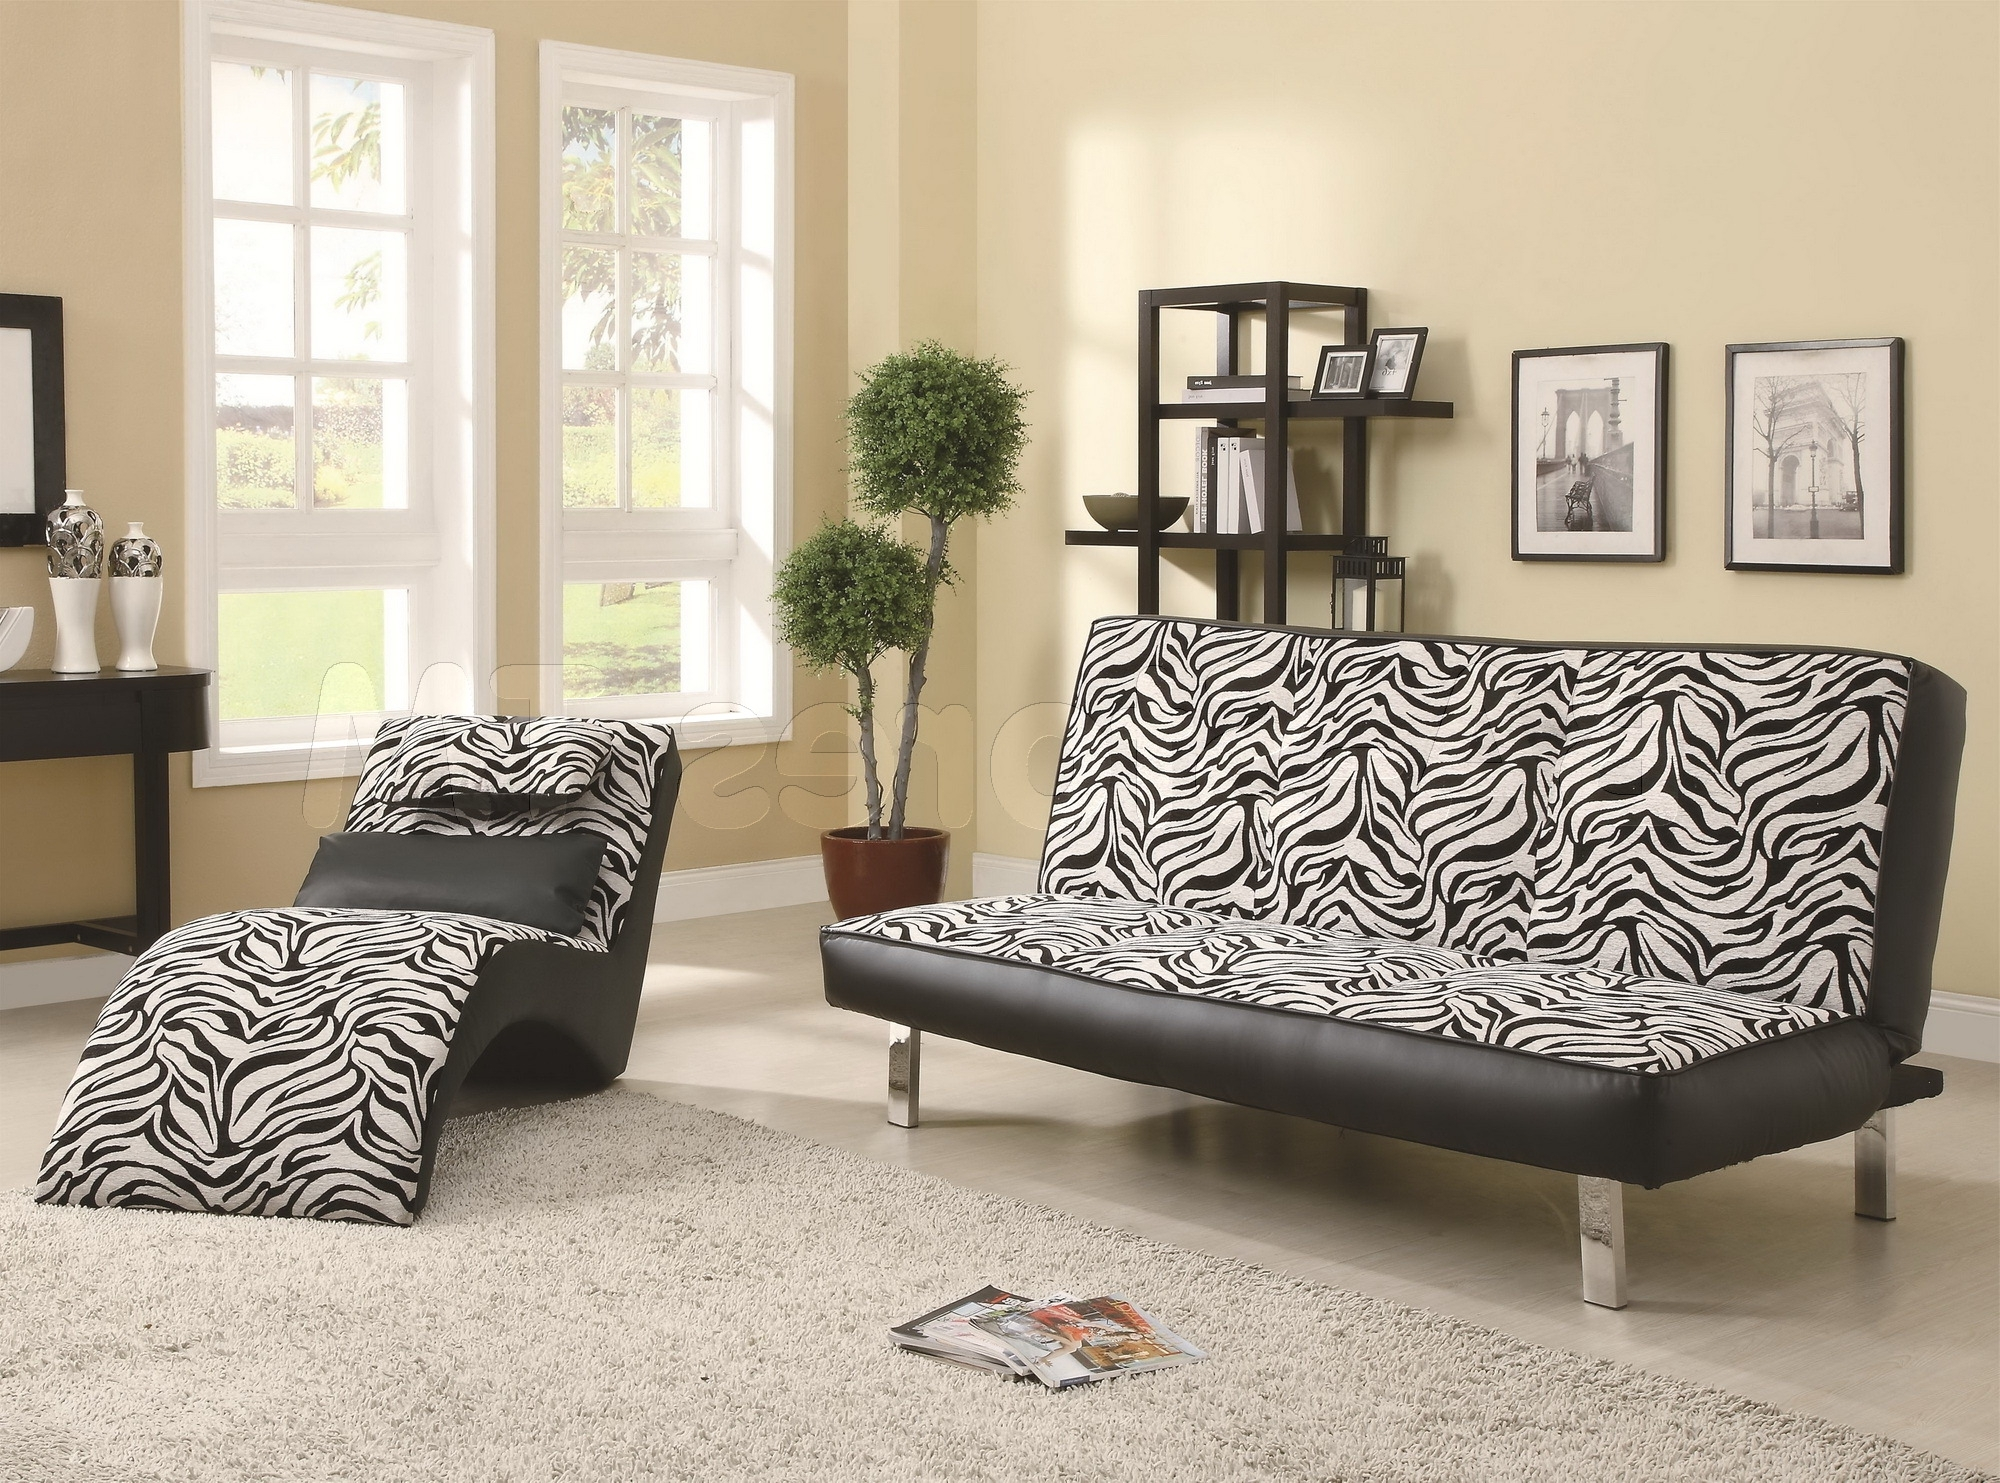 Famous Zebra Chaise Lounges Within Black White Zebra Leather Chaise Lounge Chair On Mocha Fur Rug (View 4 of 15)